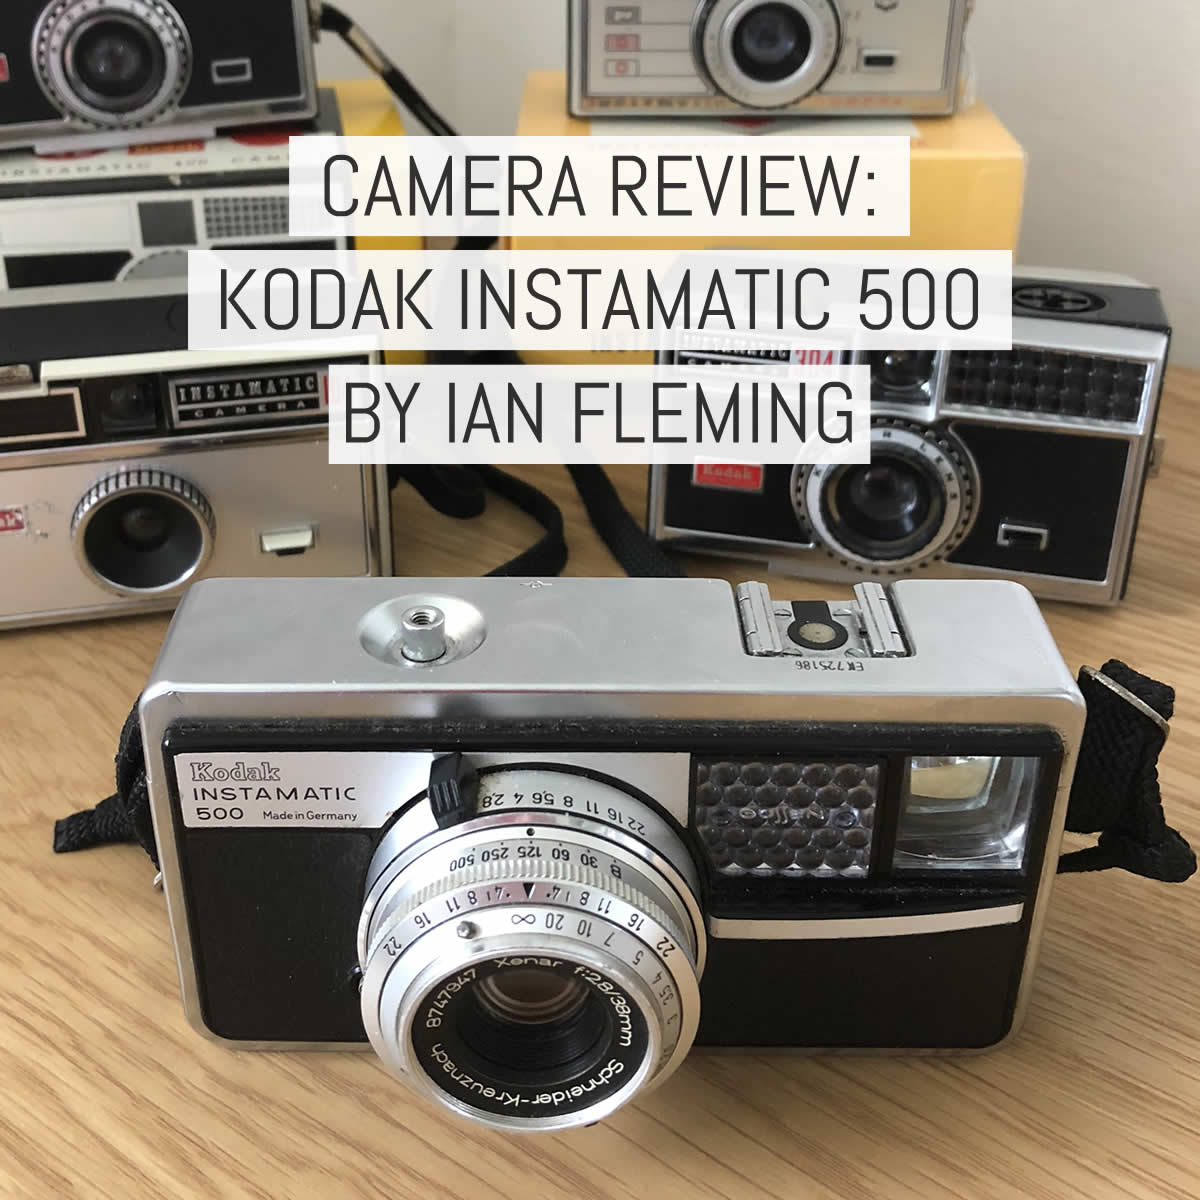 Camera review: the Kodak Instamatic 500 or, why I love 126 format film - by Ian Fleming